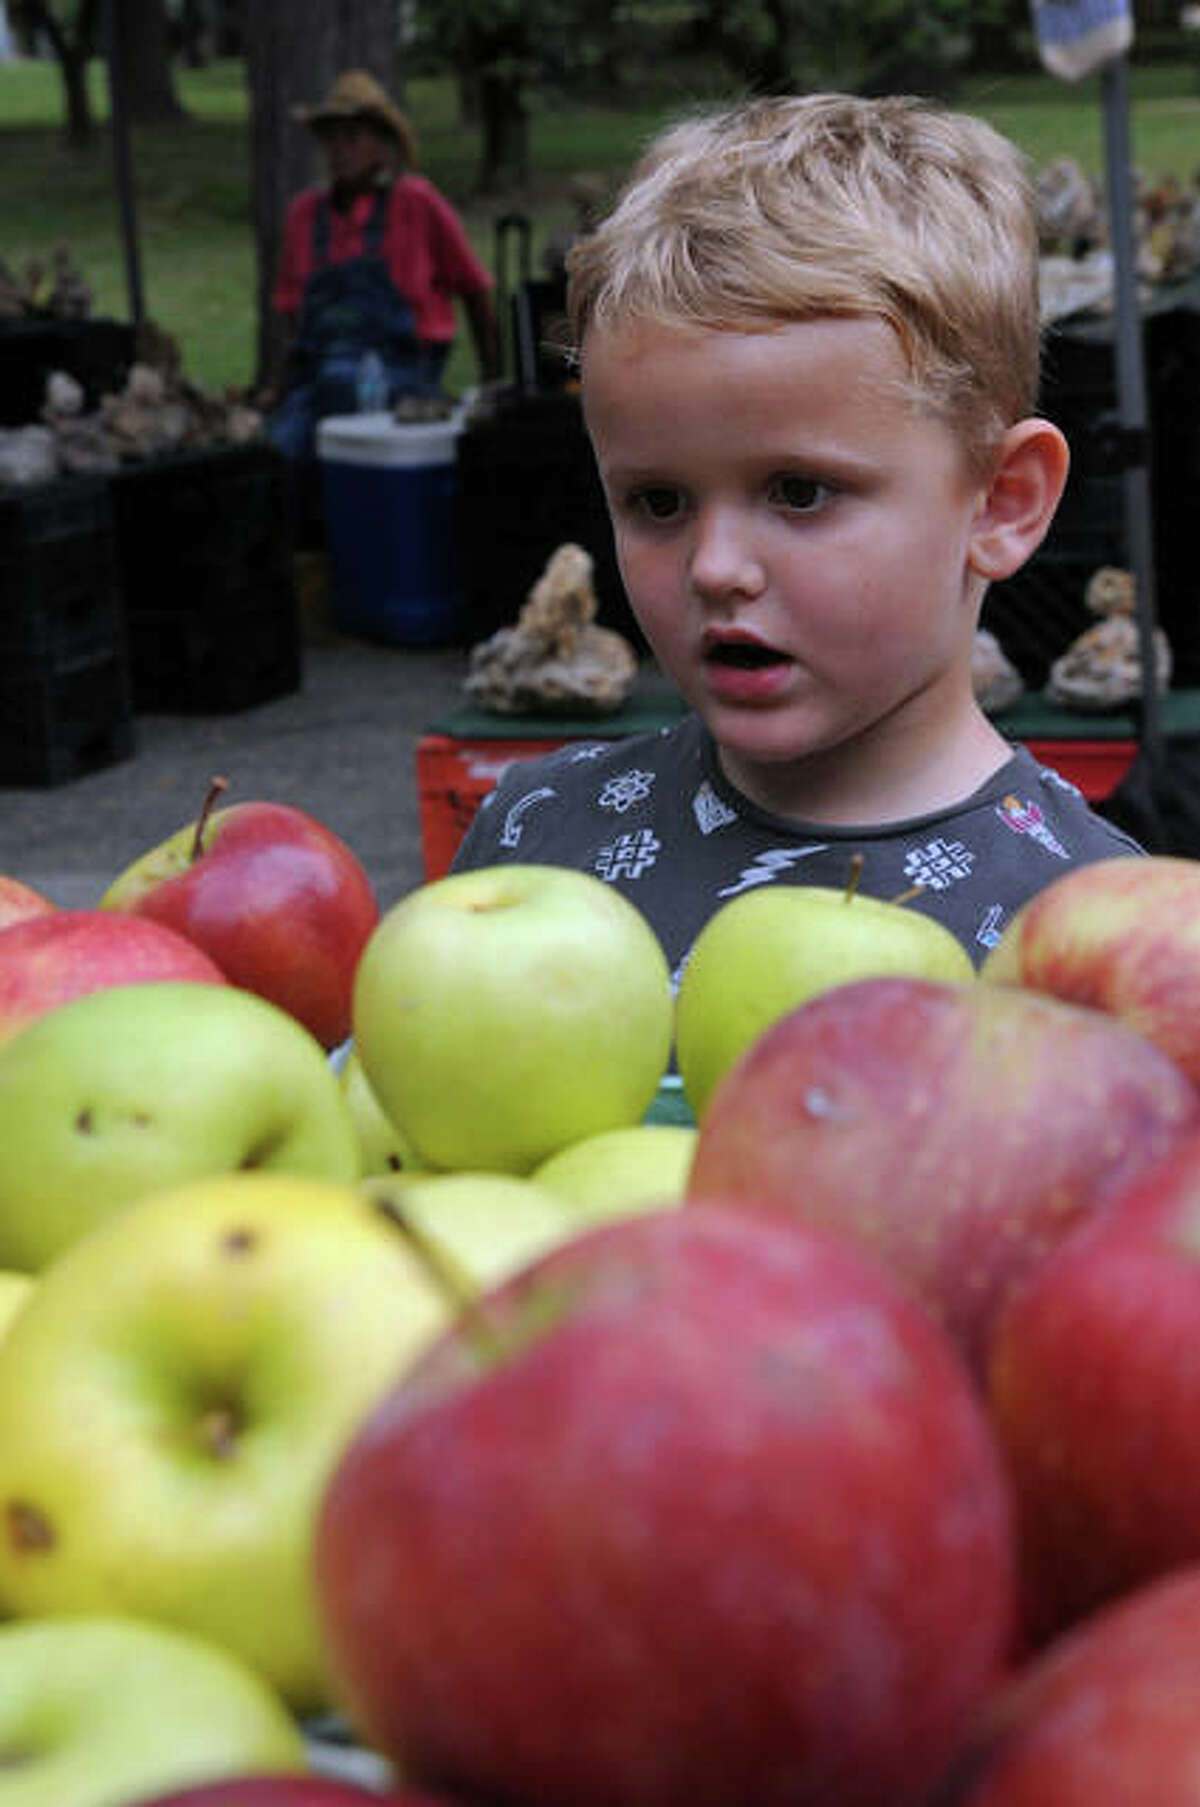 Abram Ballard of Wood River gazes at a large selection of fresh apples during the 2019 Apple Festival at Pere Marquette Lodge. This year's fest is set for Sunday at the lodge from 11 a.m. to 3 p.m.